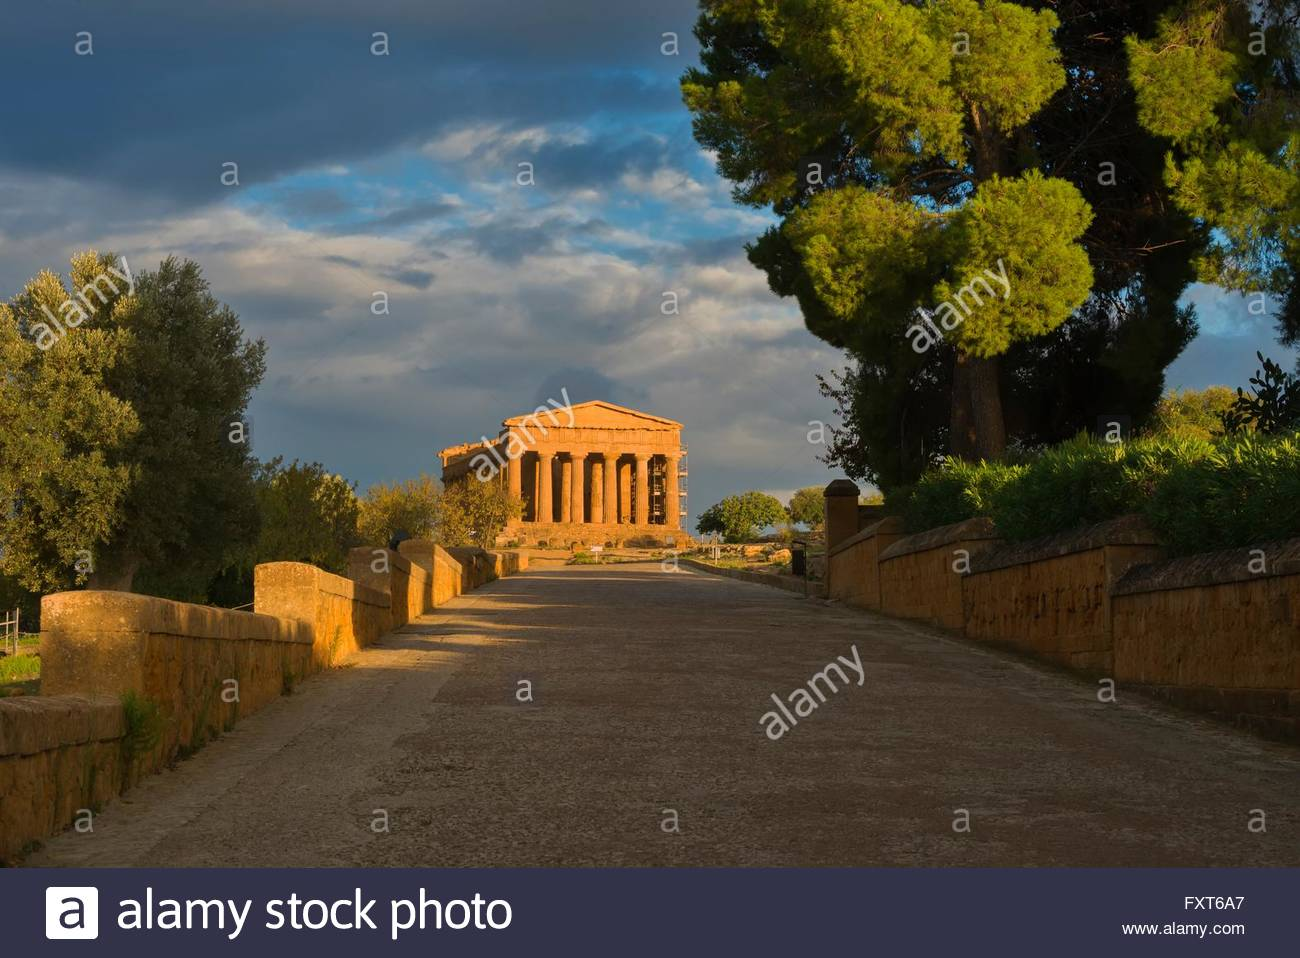 Walkway and Temple of Concordia, Valley of the Temples, Agrigento, Sicily, Italy - Stock Image